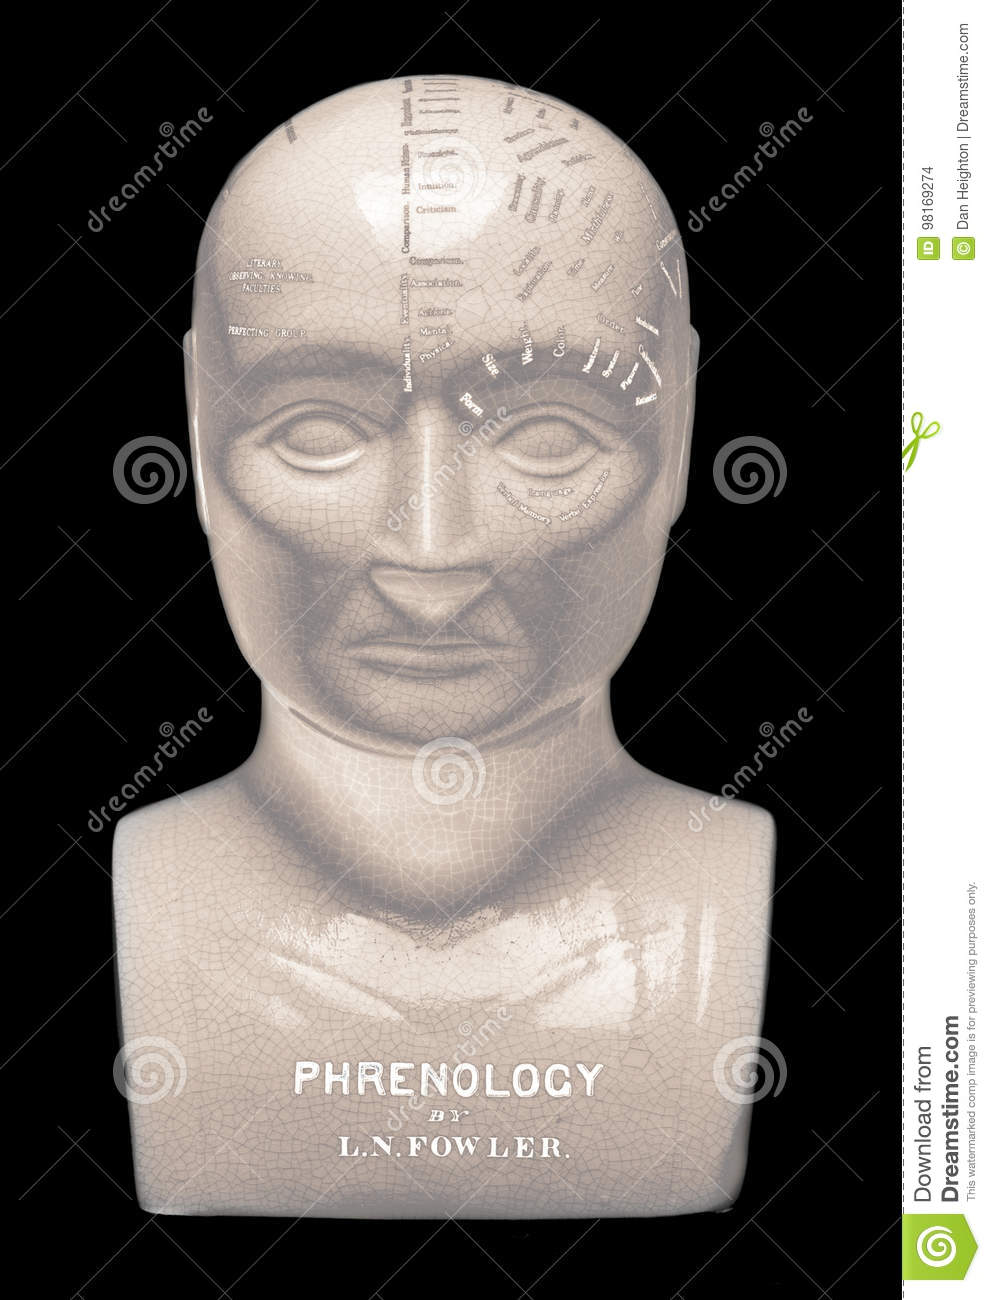 phrenology head on black background editorial stock image image of